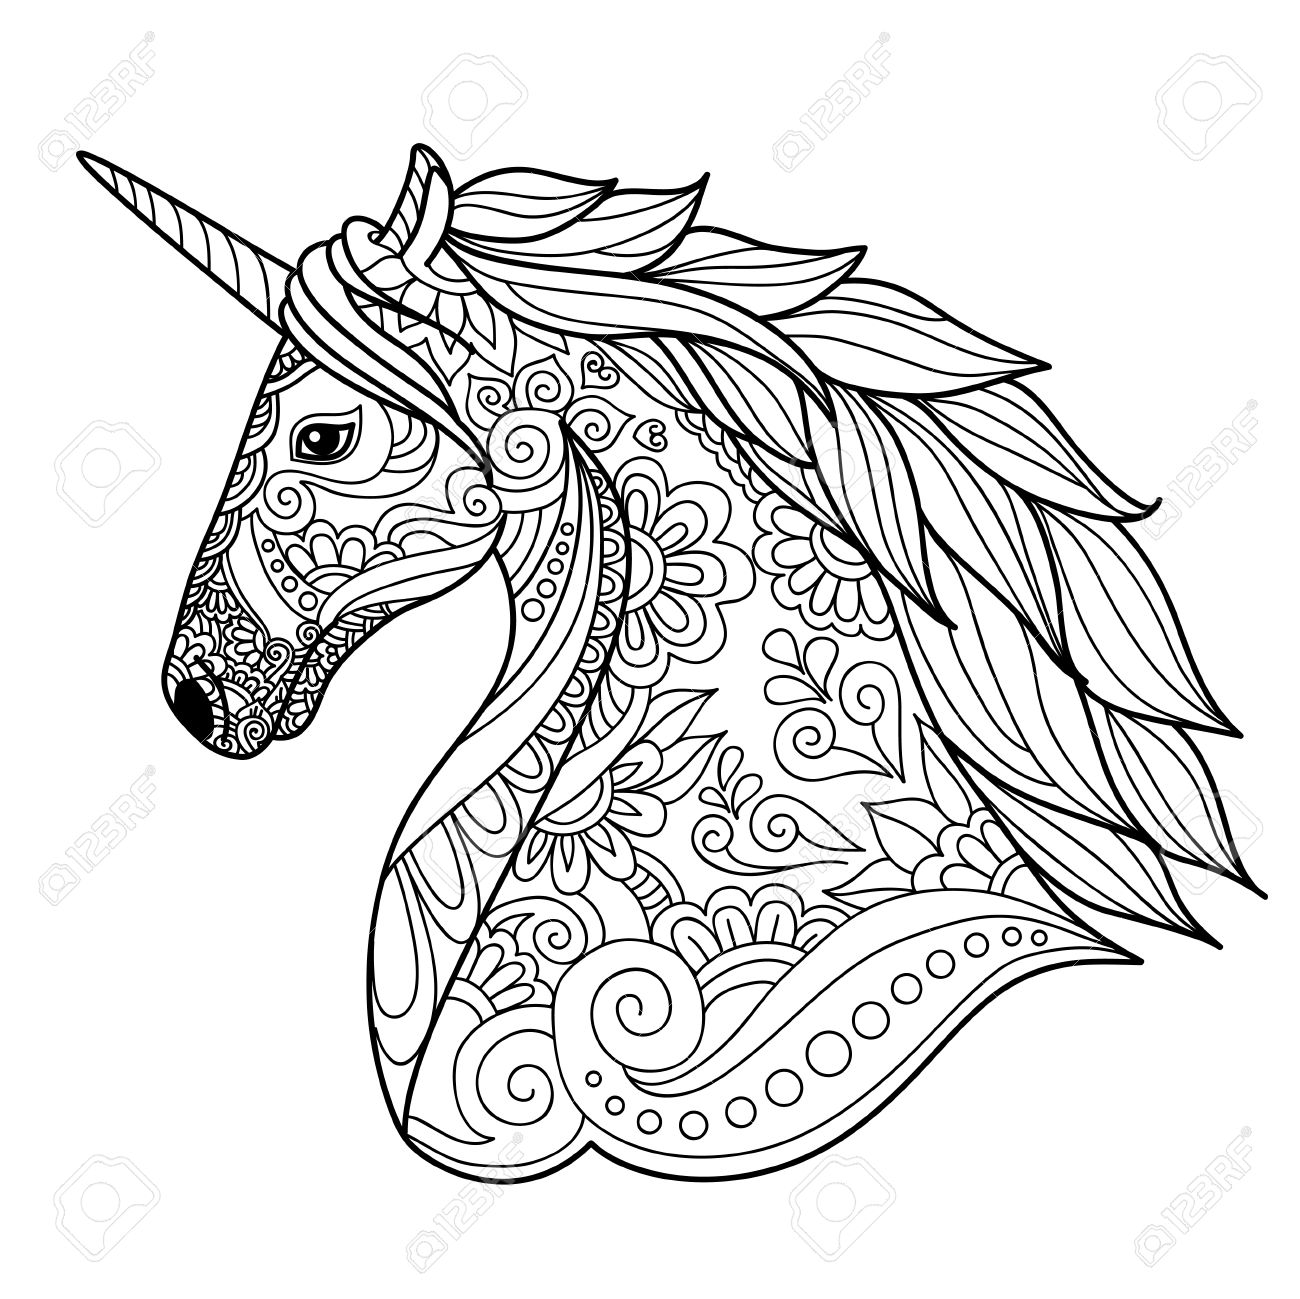 Drawing Unicorn Zentangle Style For Coloring Book Tattoo Shirt Design Logo Sign